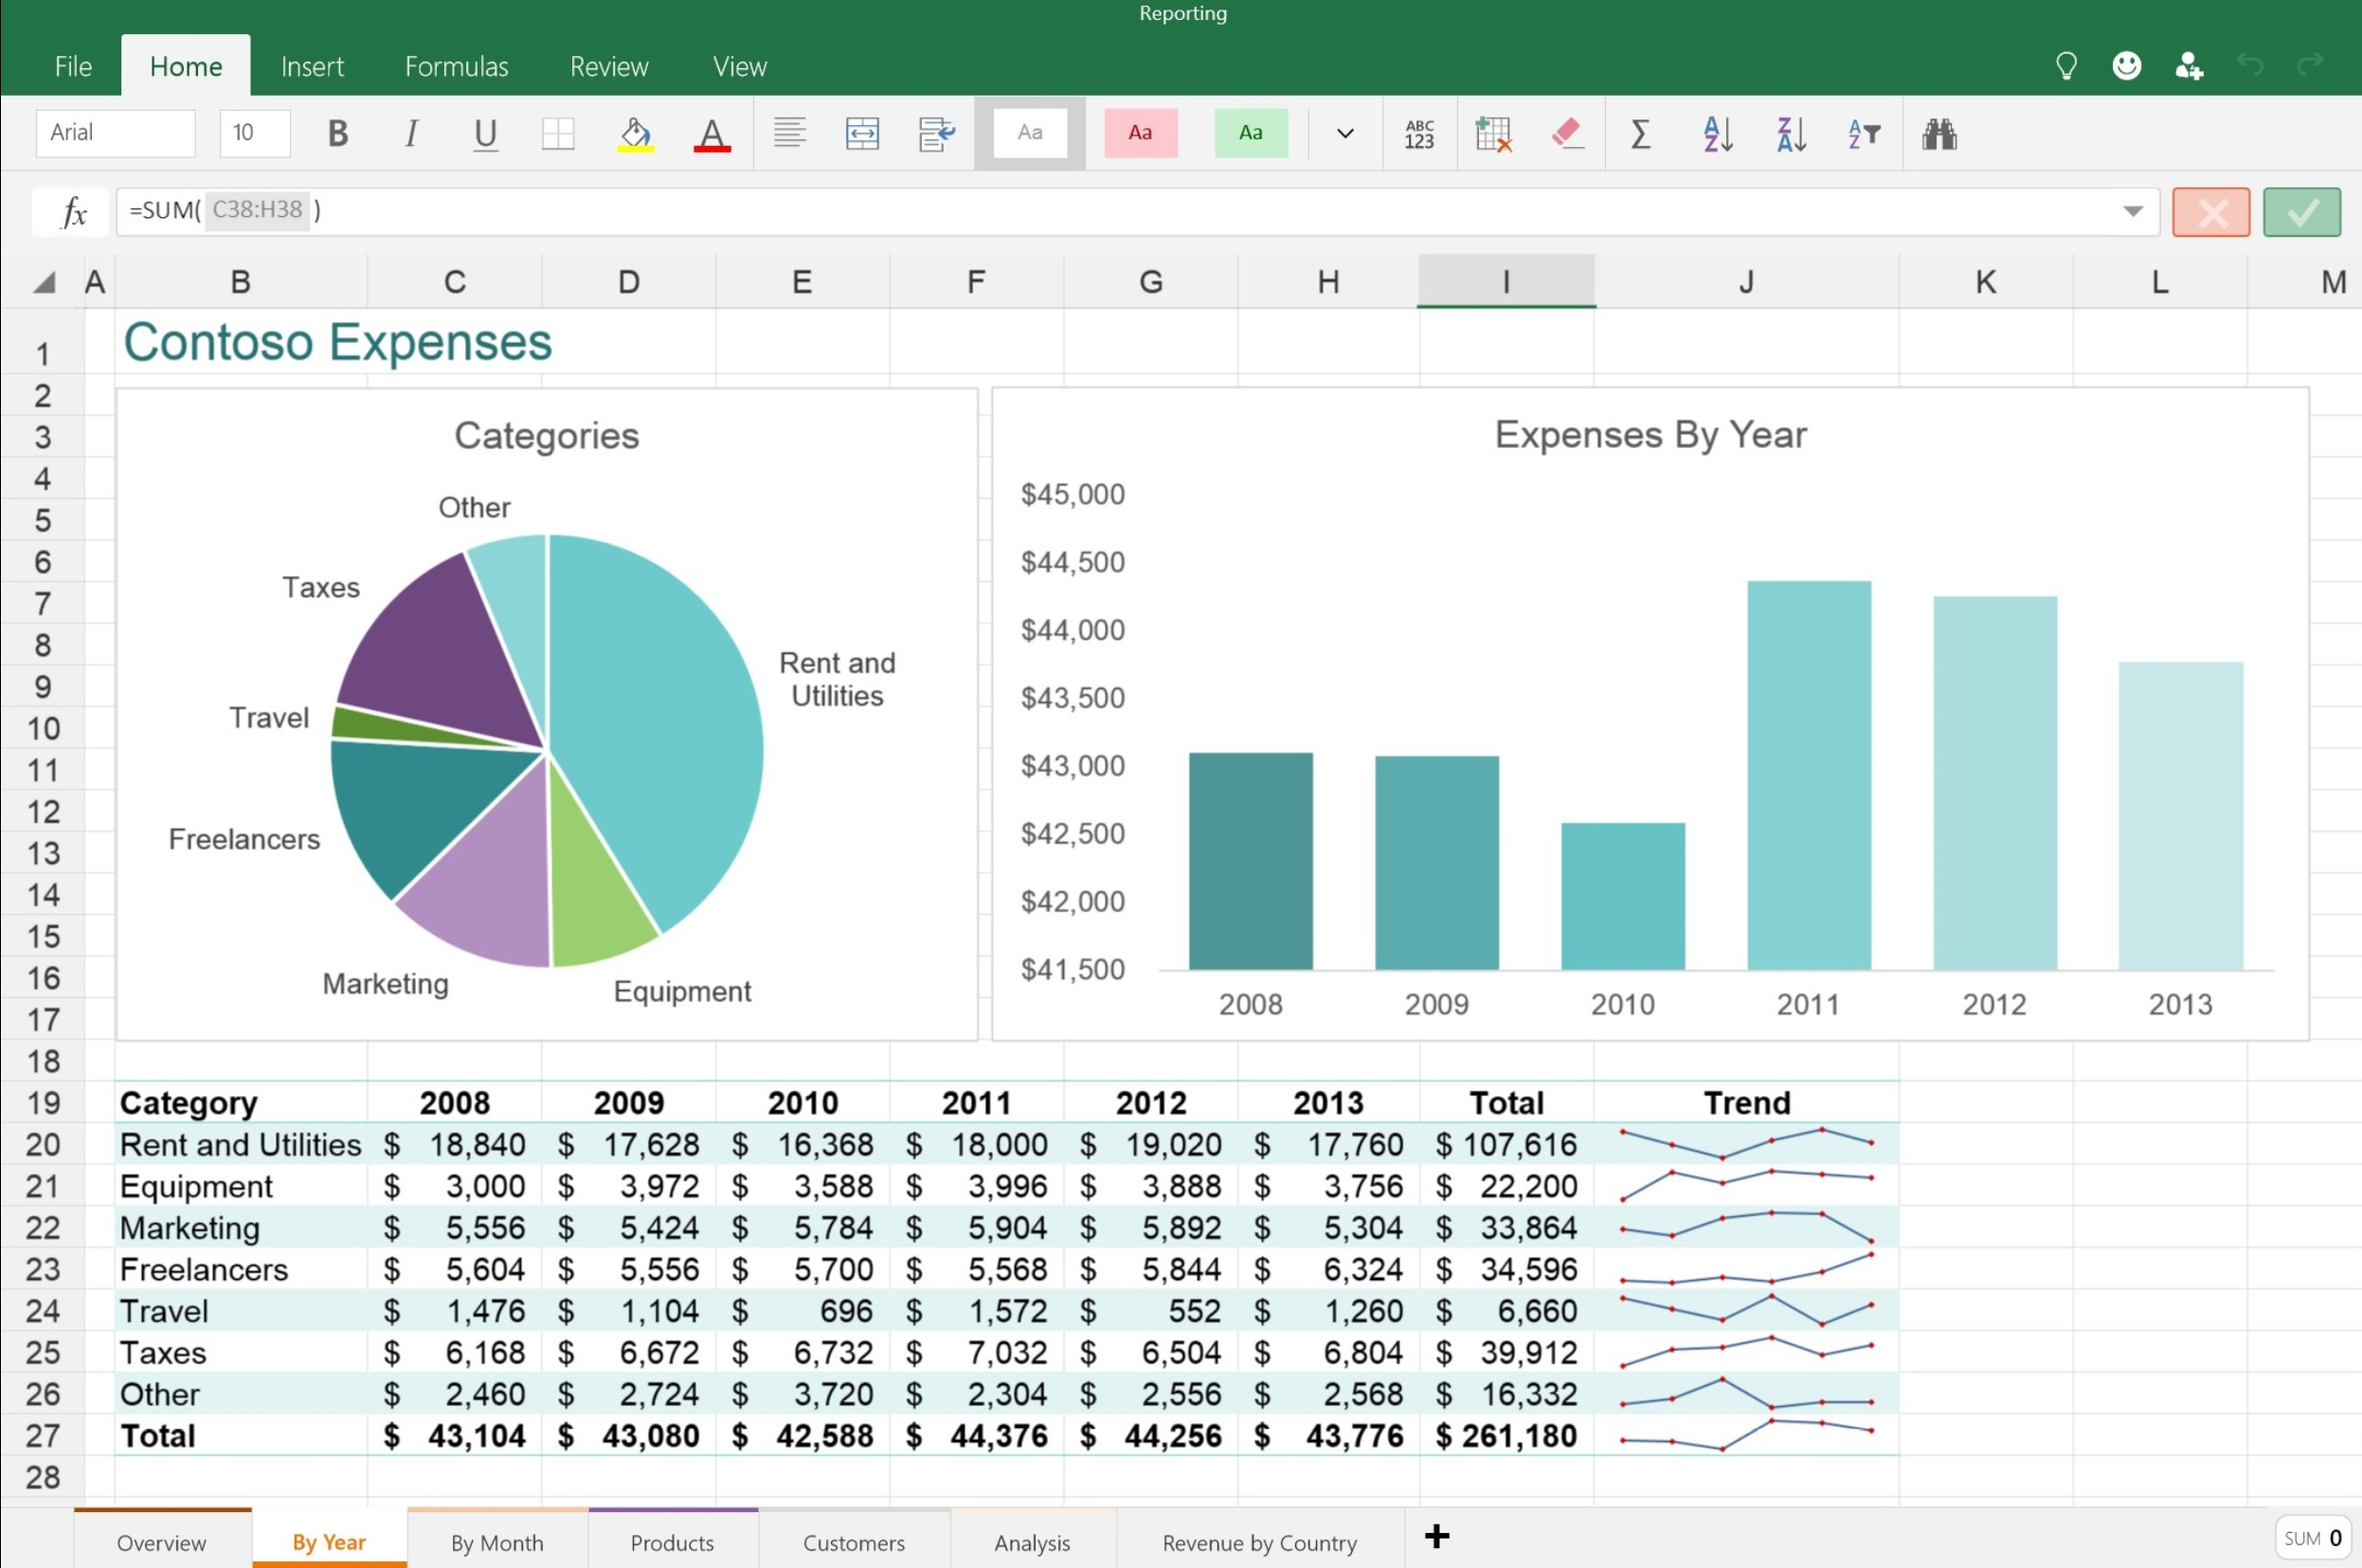 Ediblewildsus  Personable Features Available In The New Word Excel And Powerpoint Apps For  With Marvelous Excel Touch App  With Cute Substring En Excel Also Nse Stock Quotes In Excel In Addition Use Solver In Excel And Excel For Windows  As Well As Expenses Excel Sheet Additionally Uses Of Charts In Excel From Mspowerusercom With Ediblewildsus  Marvelous Features Available In The New Word Excel And Powerpoint Apps For  With Cute Excel Touch App  And Personable Substring En Excel Also Nse Stock Quotes In Excel In Addition Use Solver In Excel From Mspowerusercom